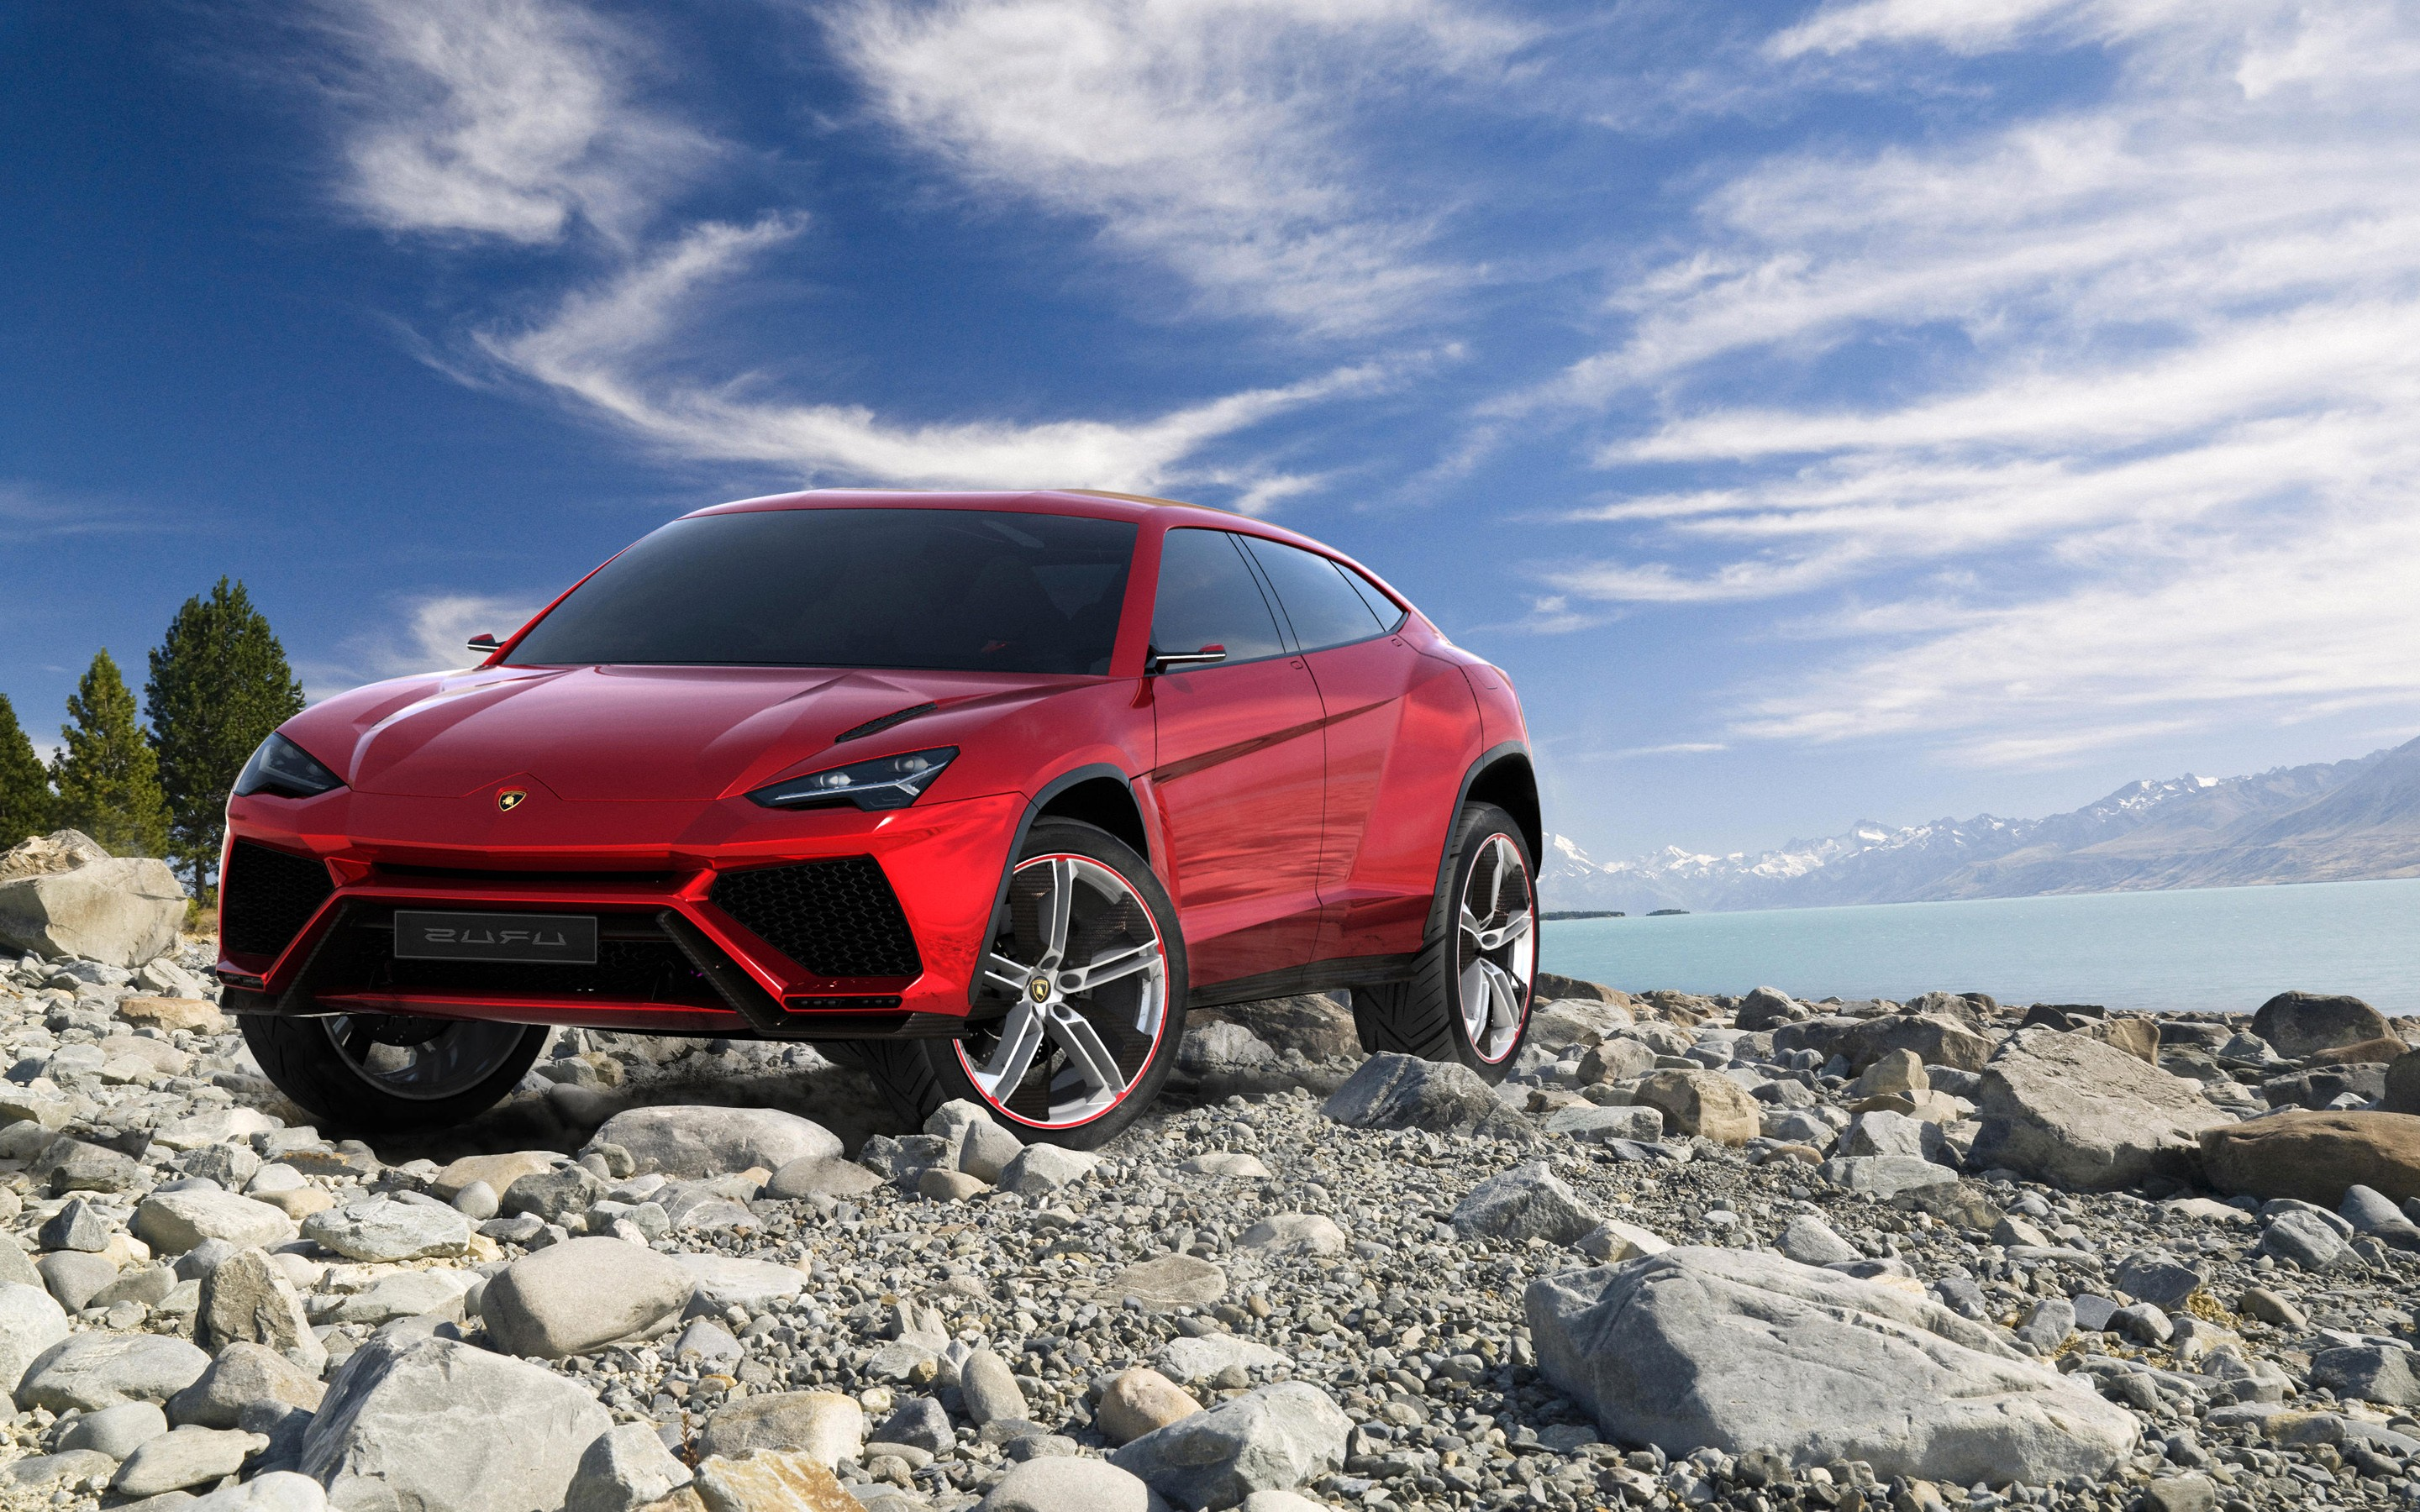 Lamborghini Urus SUV, HD Cars, 4k Wallpapers, Images